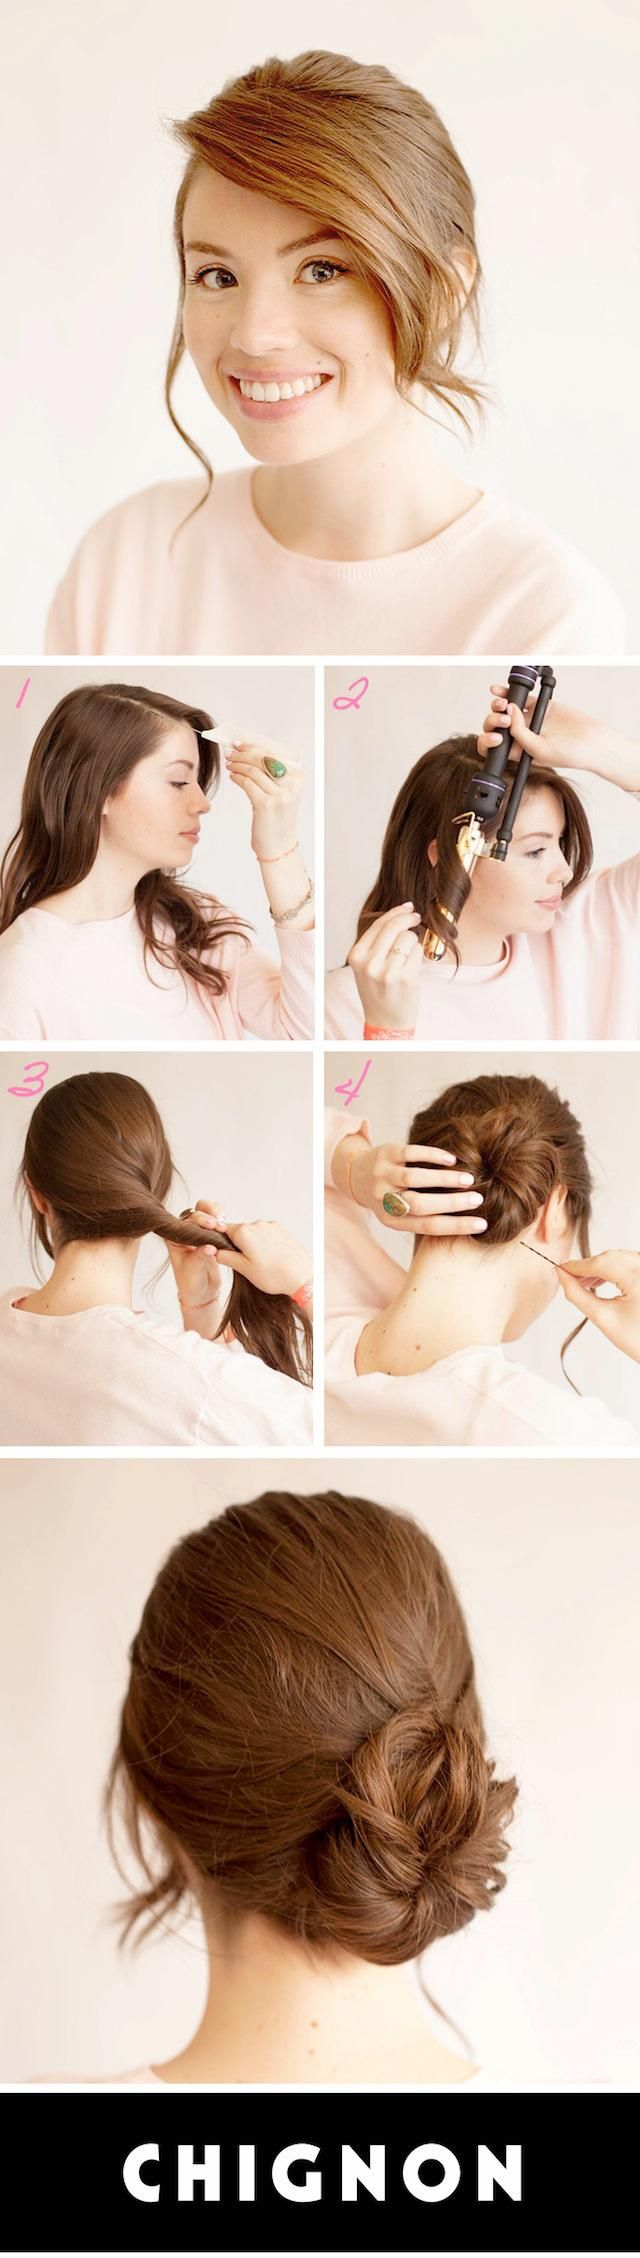 Prom Hairstyles: Messy Chignon Updo Hair Tutorial | BeautyHigh.com